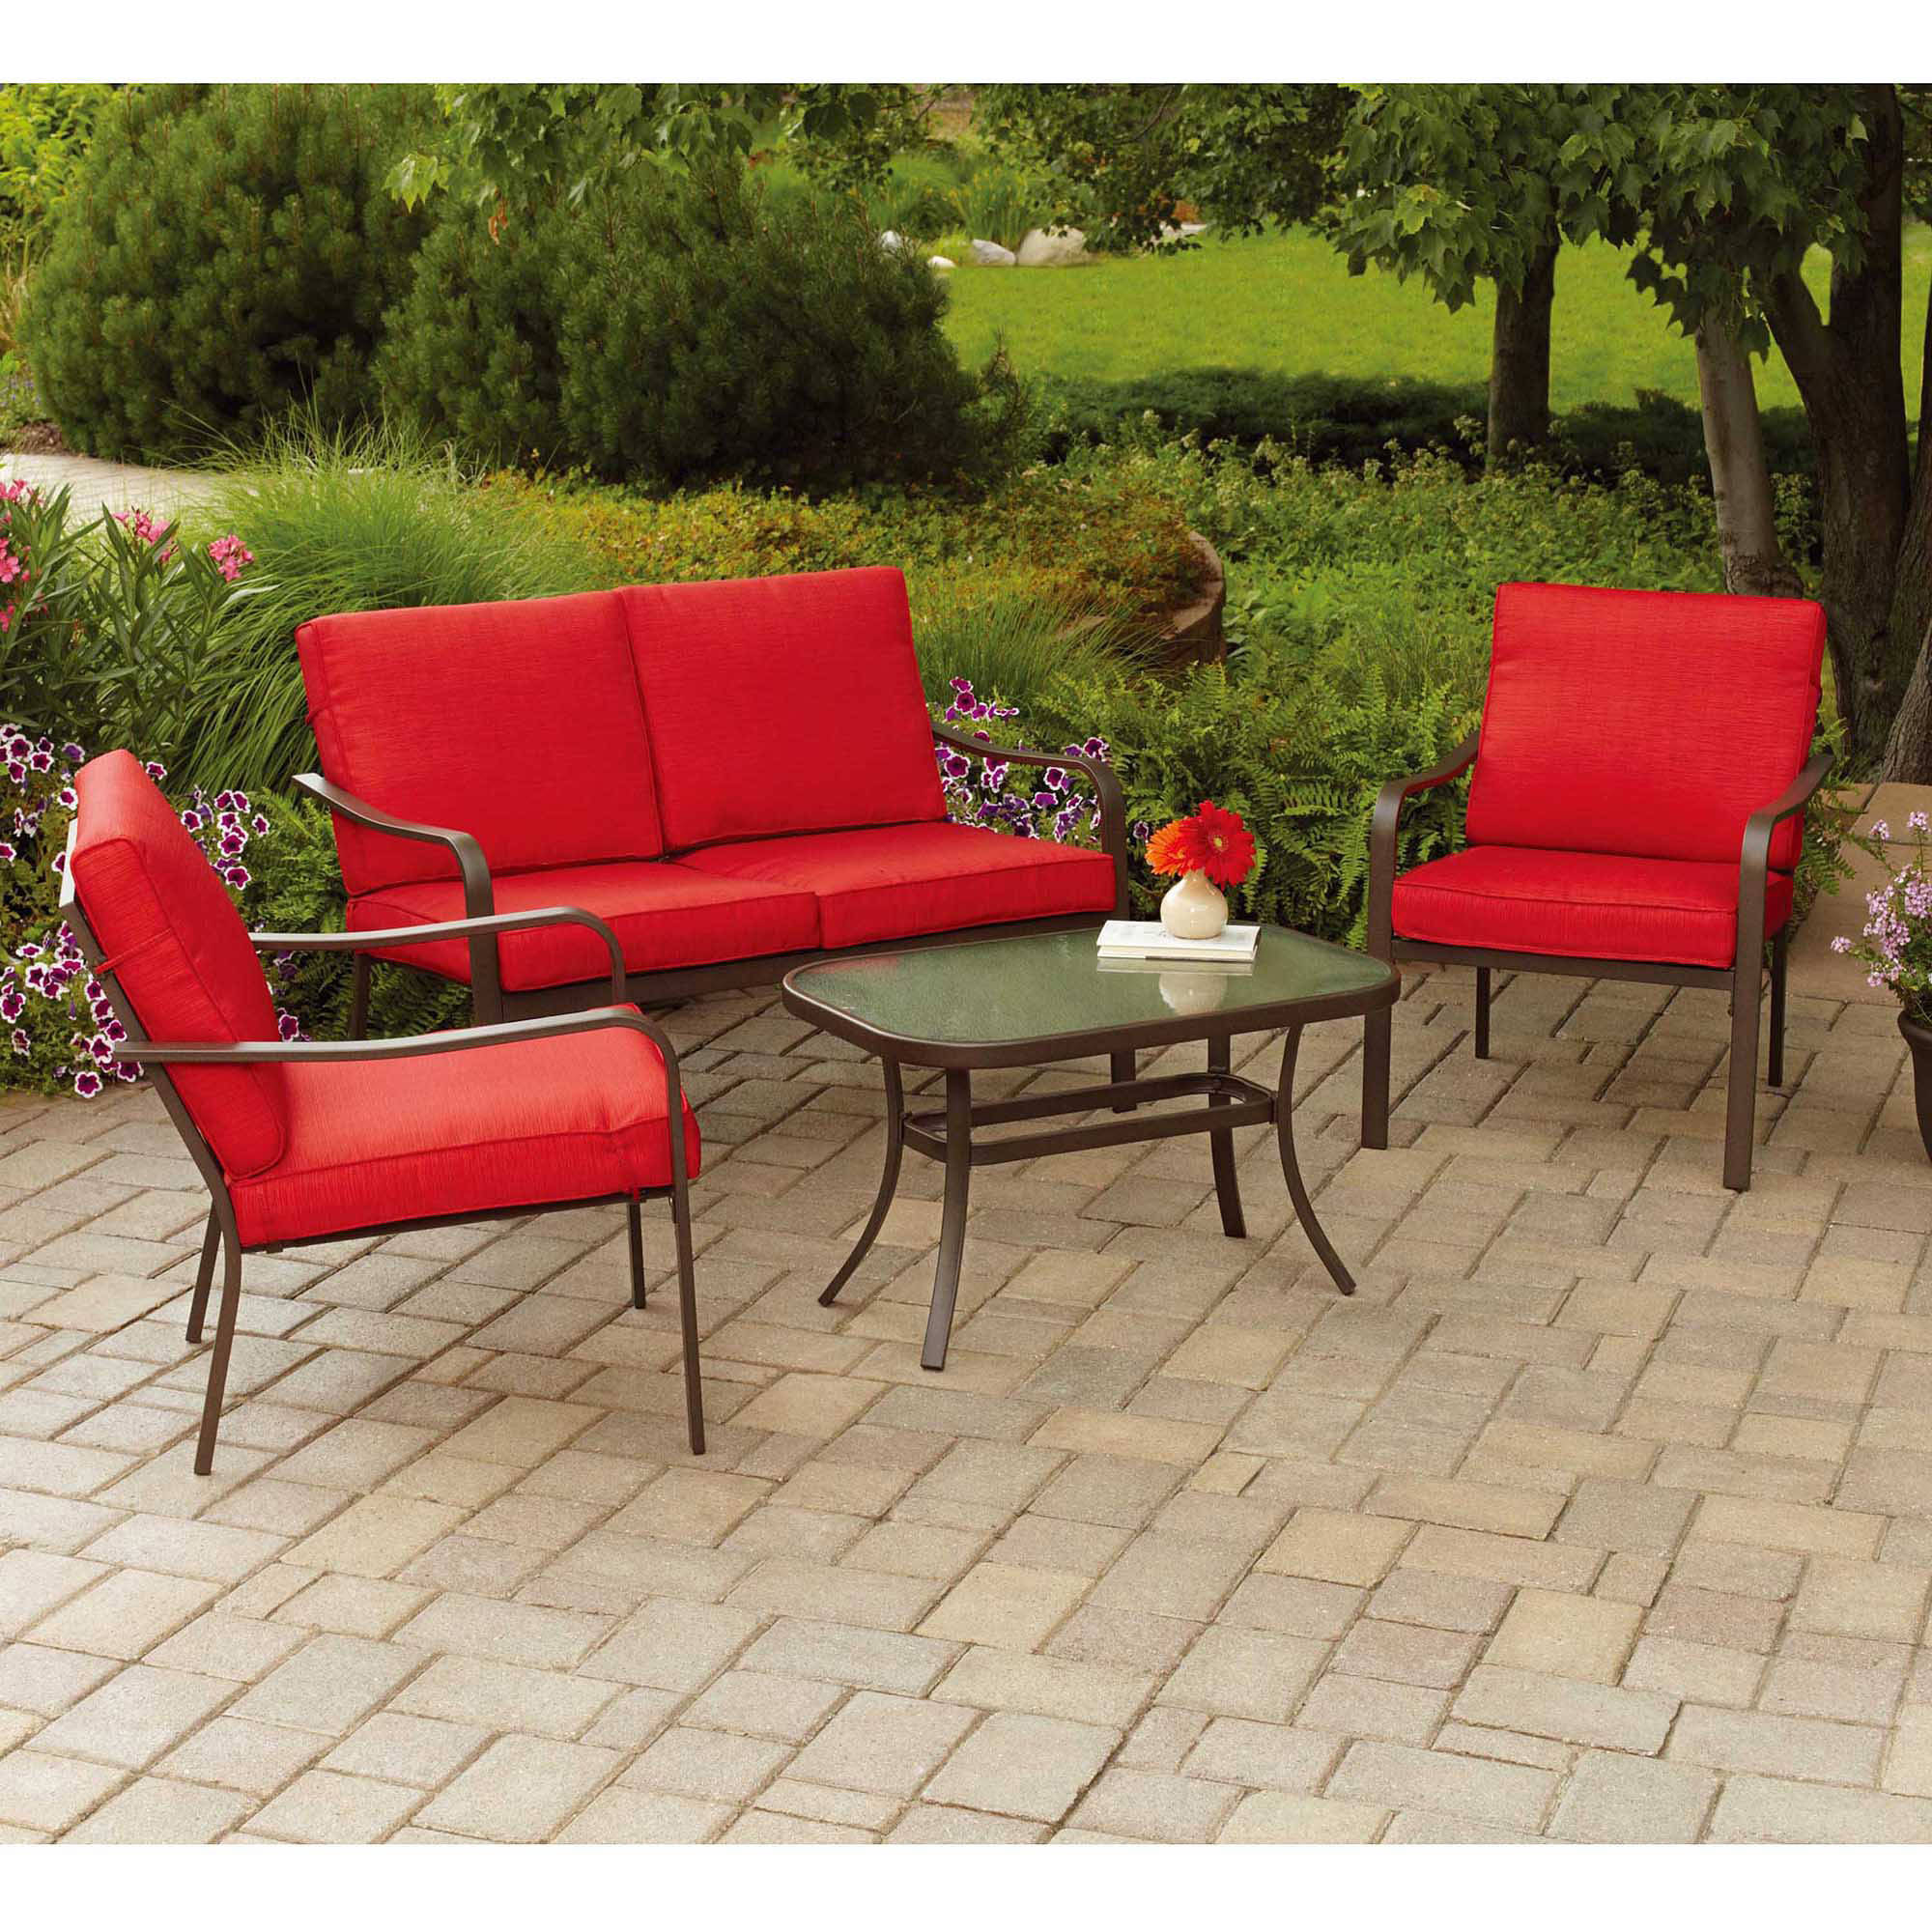 Mainstays Stanton Cushioned 4-Piece Patio Conversation Set, Seats 4